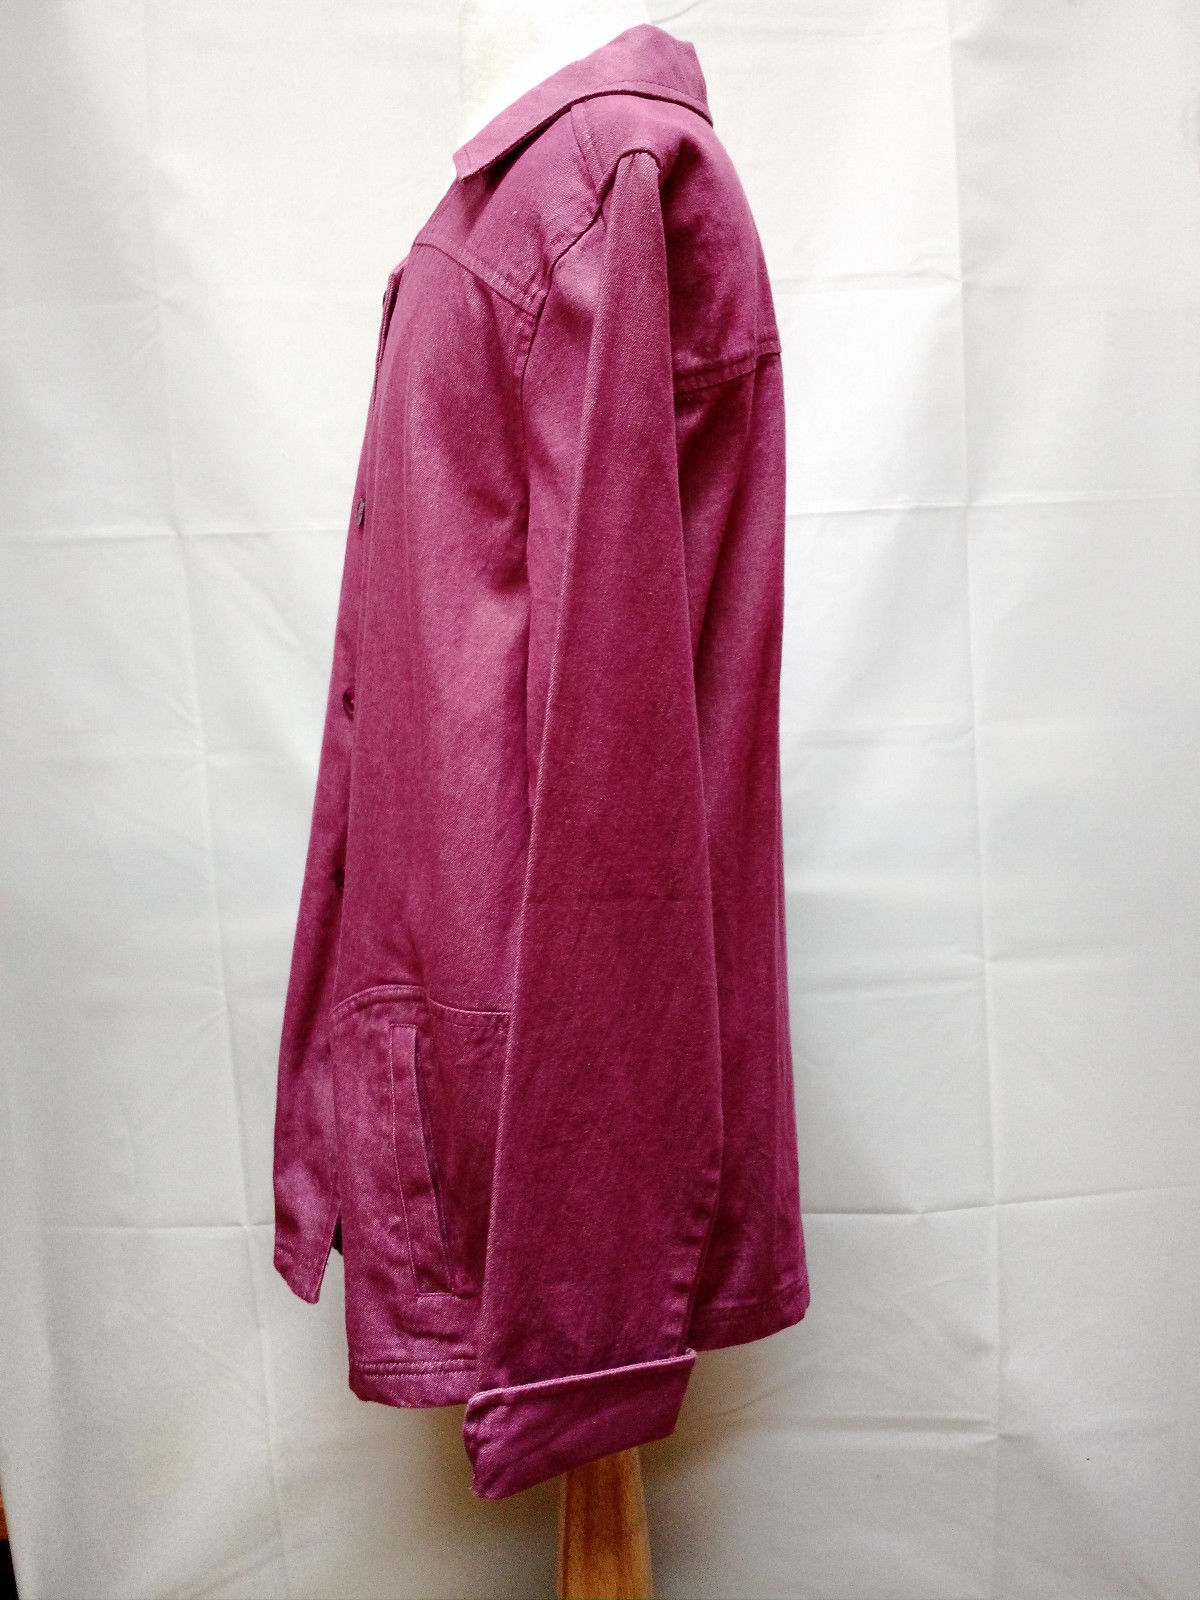 Denim & Co X-small Small Denim Violet Purple Long Jacket Blazer Coat Wide A Line